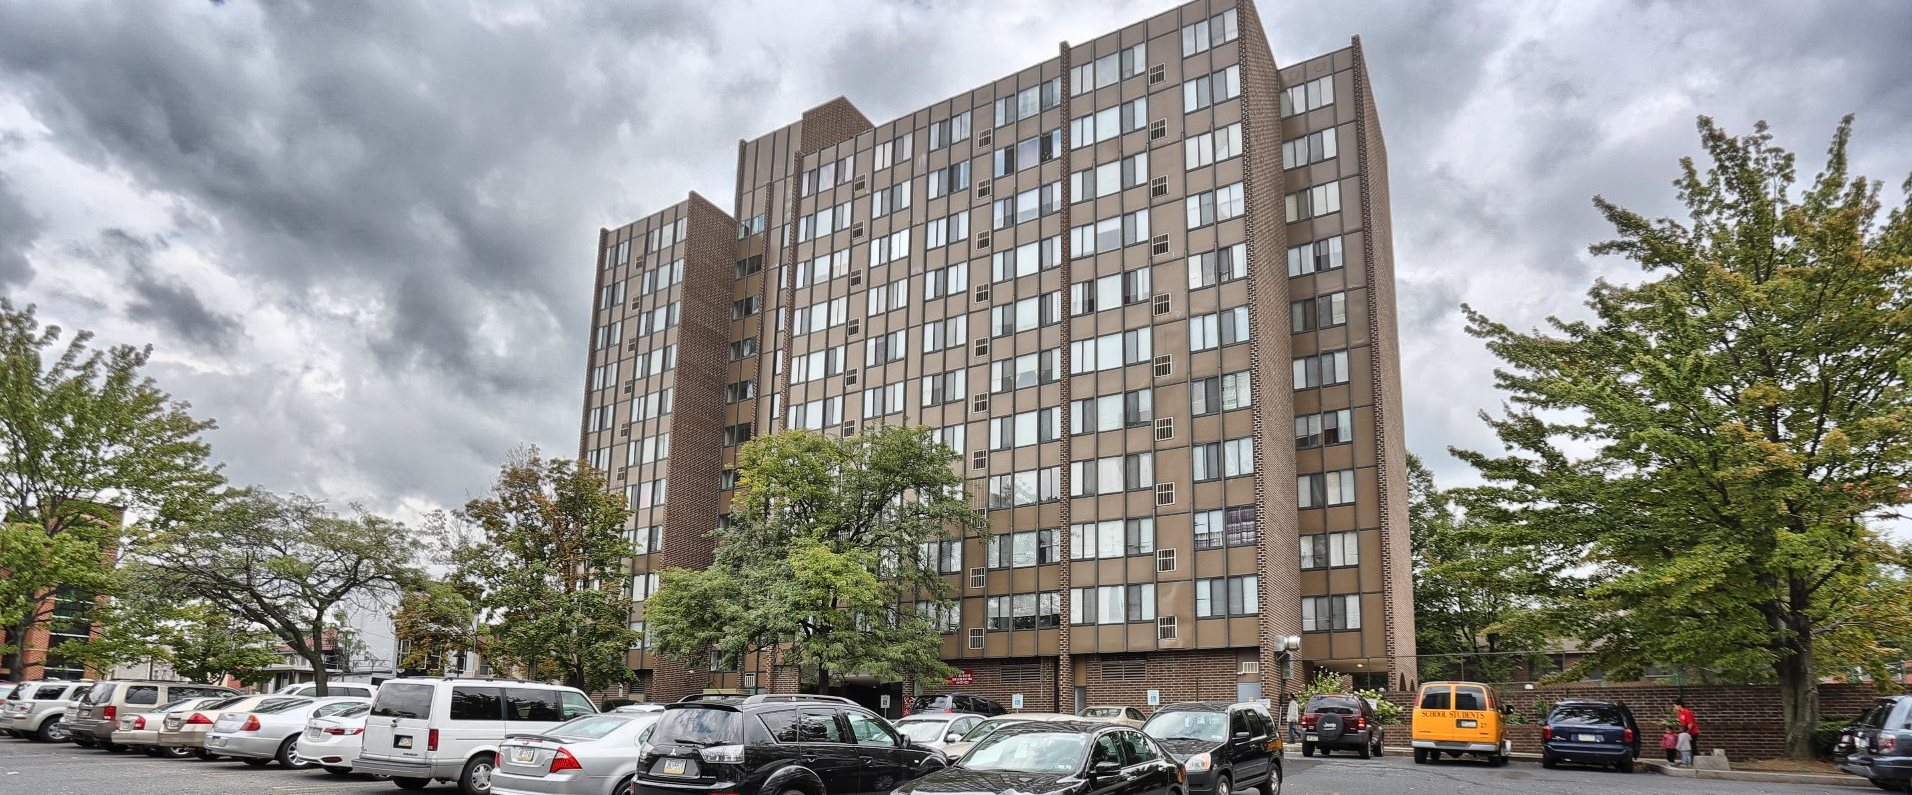 Apartments In Reading Pa Berkshire Tower Apartments Pmi